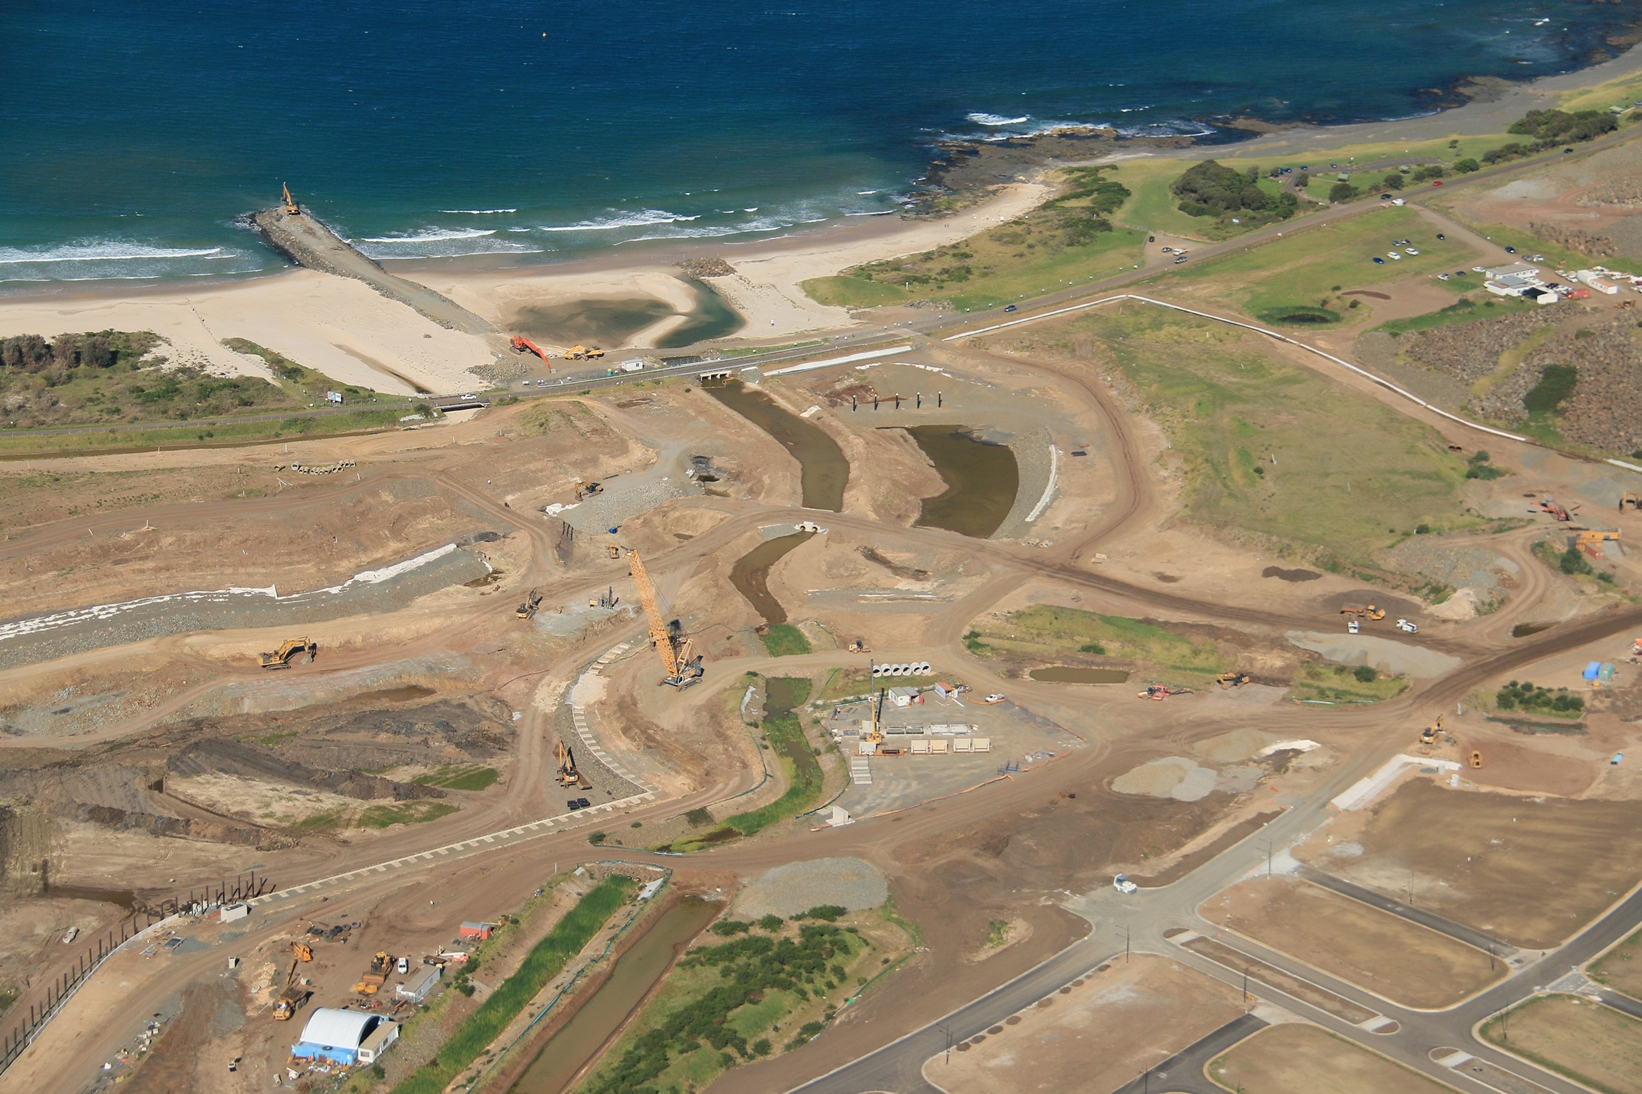 Shell Cove October 2016 Aerial Images